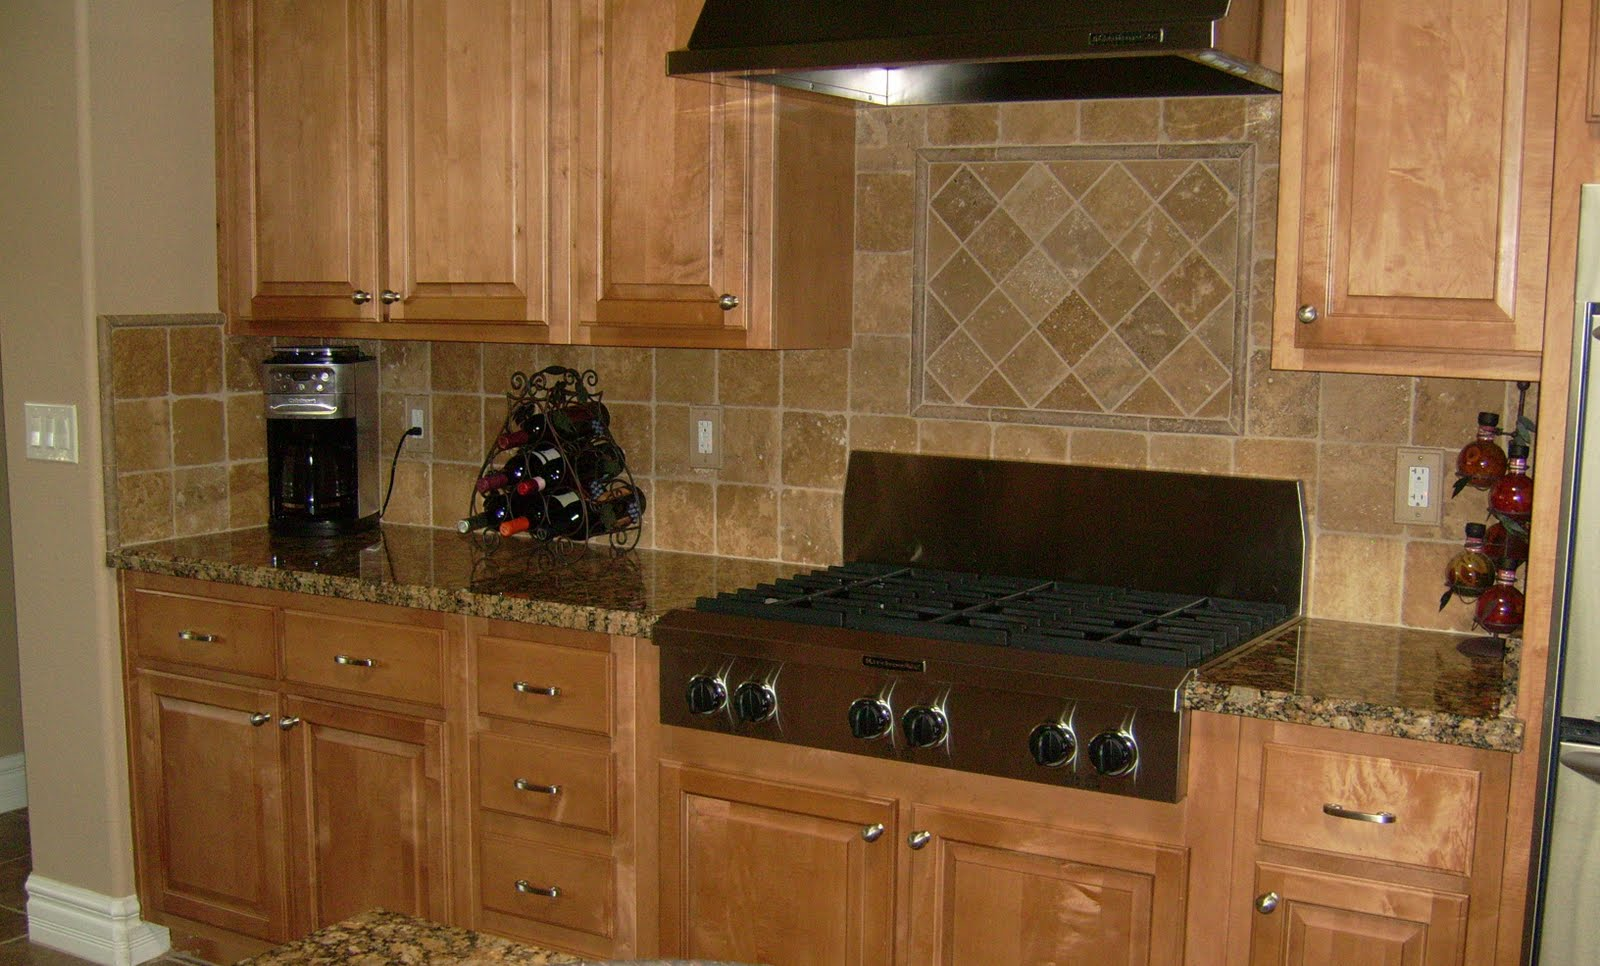 Kitchen backsplash ideas x tumbled stone kitchen backsplash - home ...